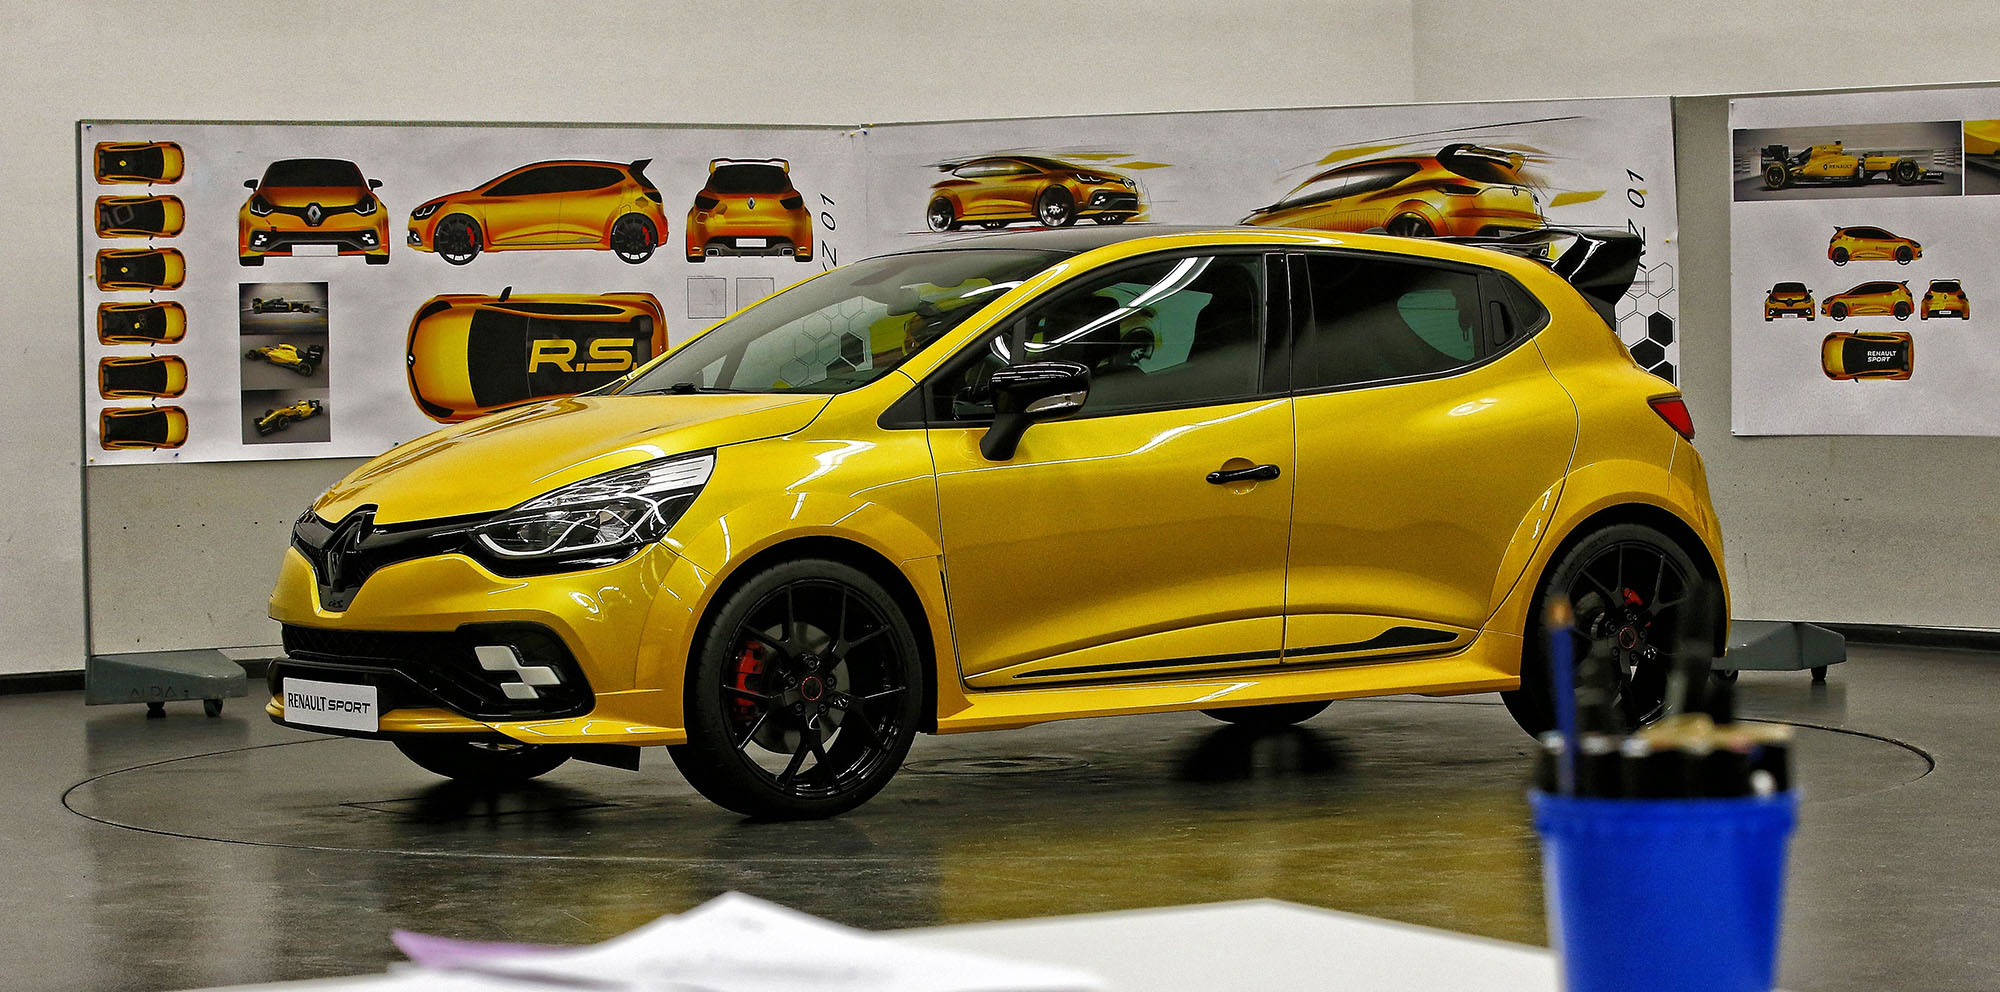 renault clio rs 16 concept unveiled with megane rs power video photos 1 of 9. Black Bedroom Furniture Sets. Home Design Ideas